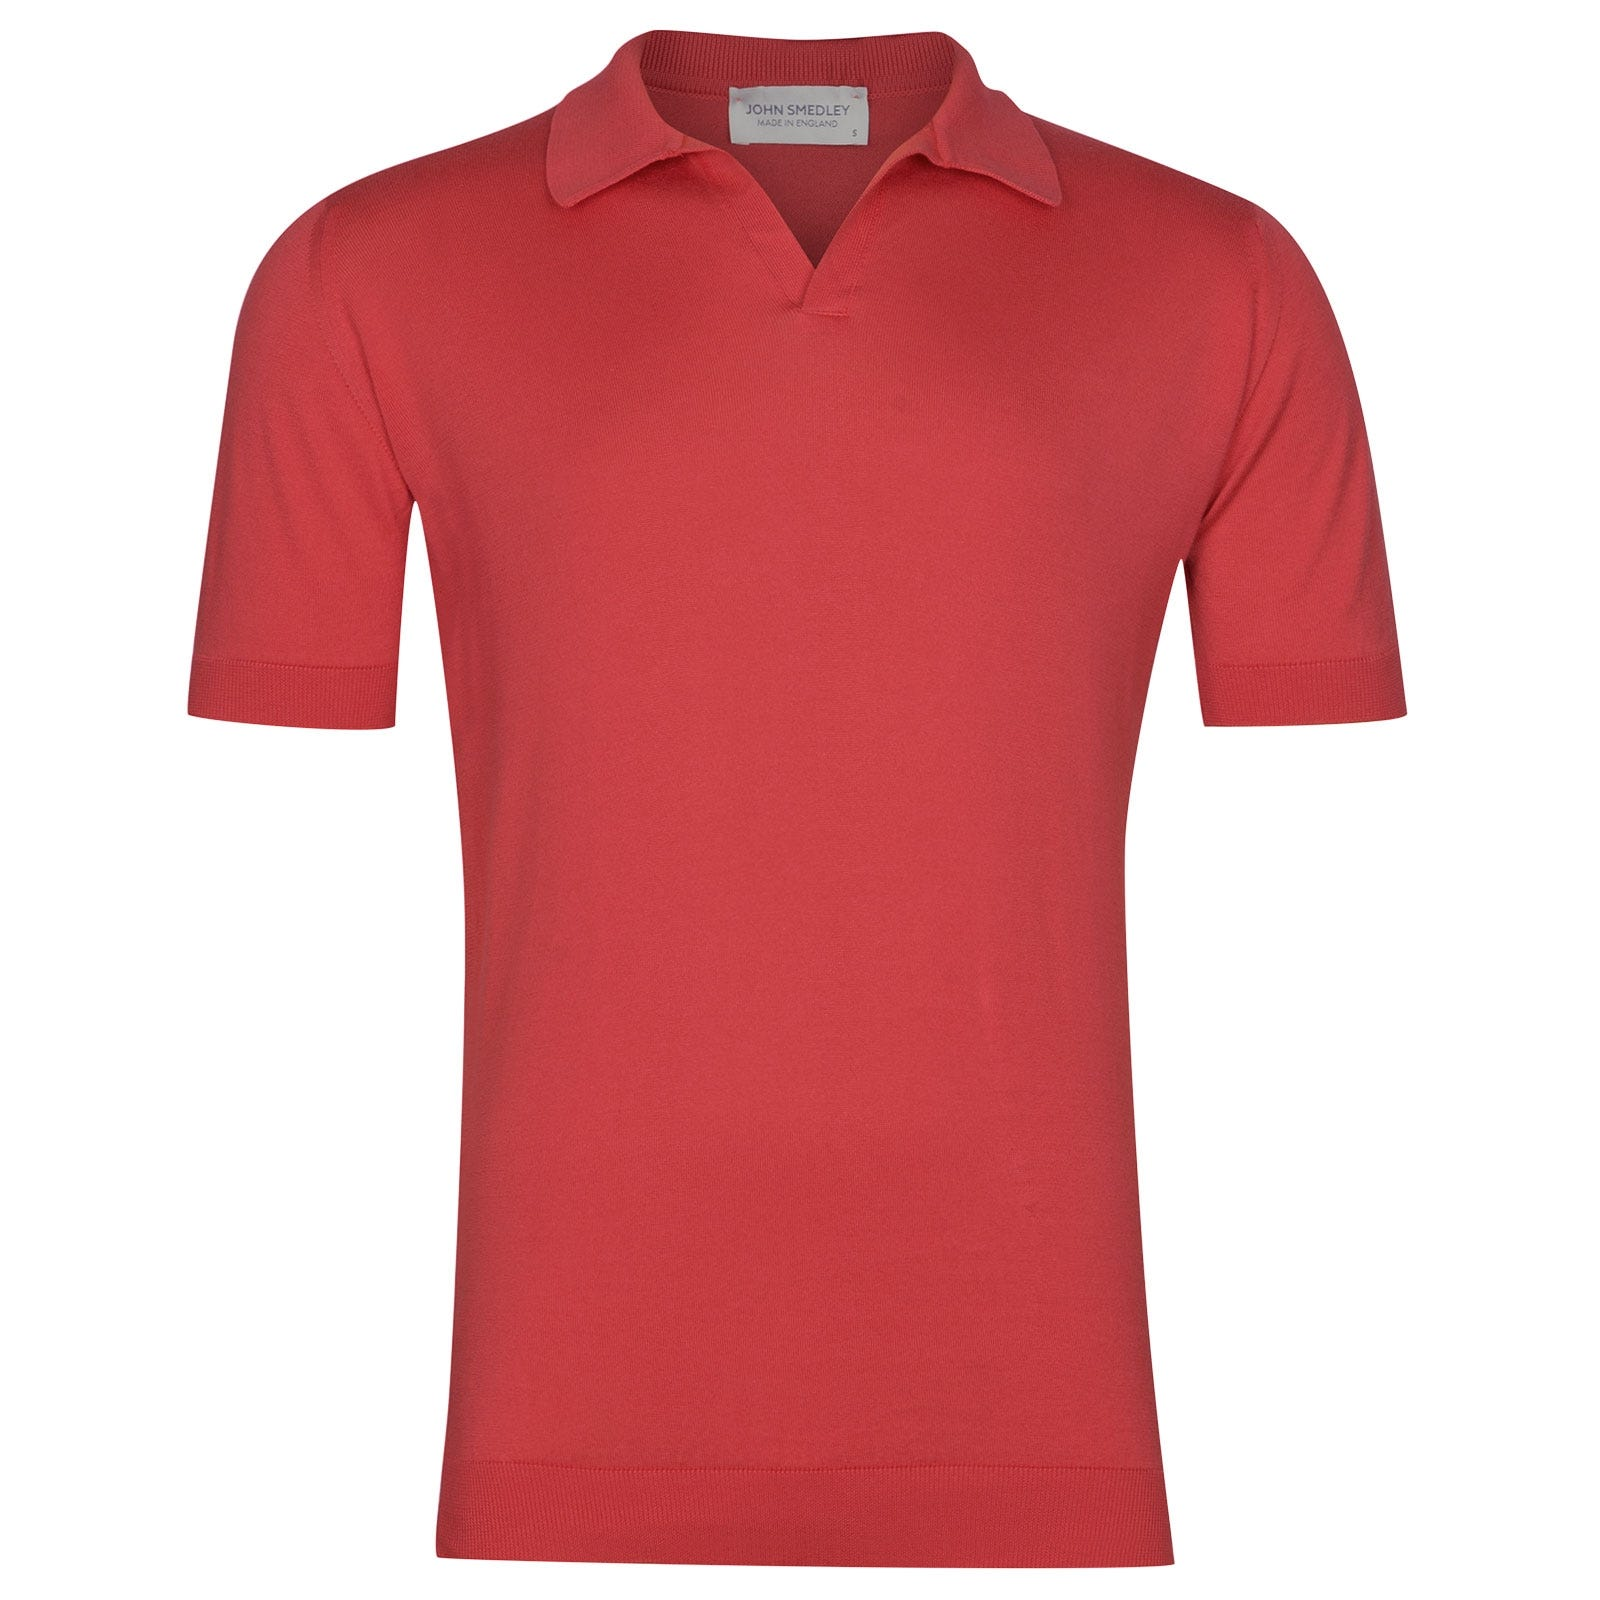 John Smedley Noah Sea Island Cotton Shirt in Ruche Red-XXL